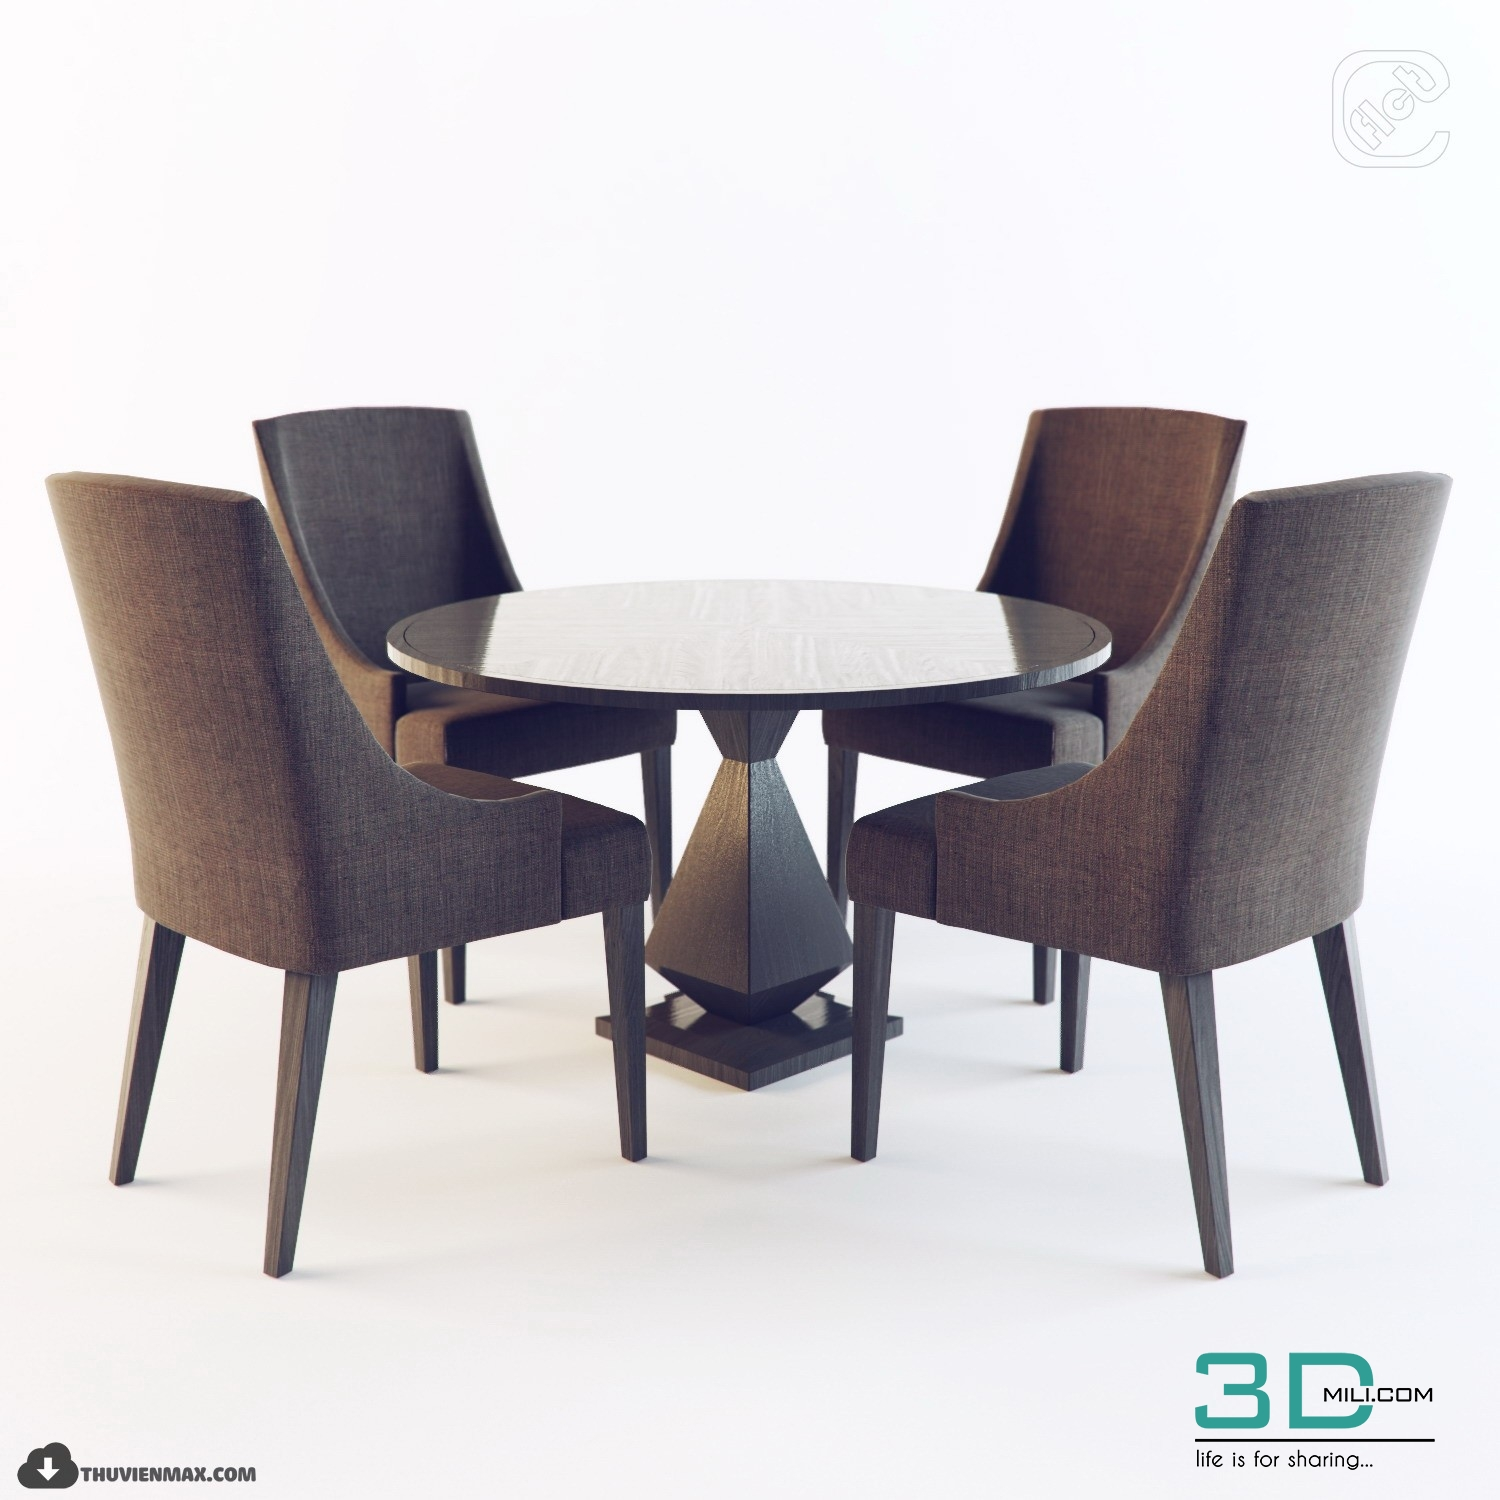 219 table chair 3d models free download 3d mili. Black Bedroom Furniture Sets. Home Design Ideas